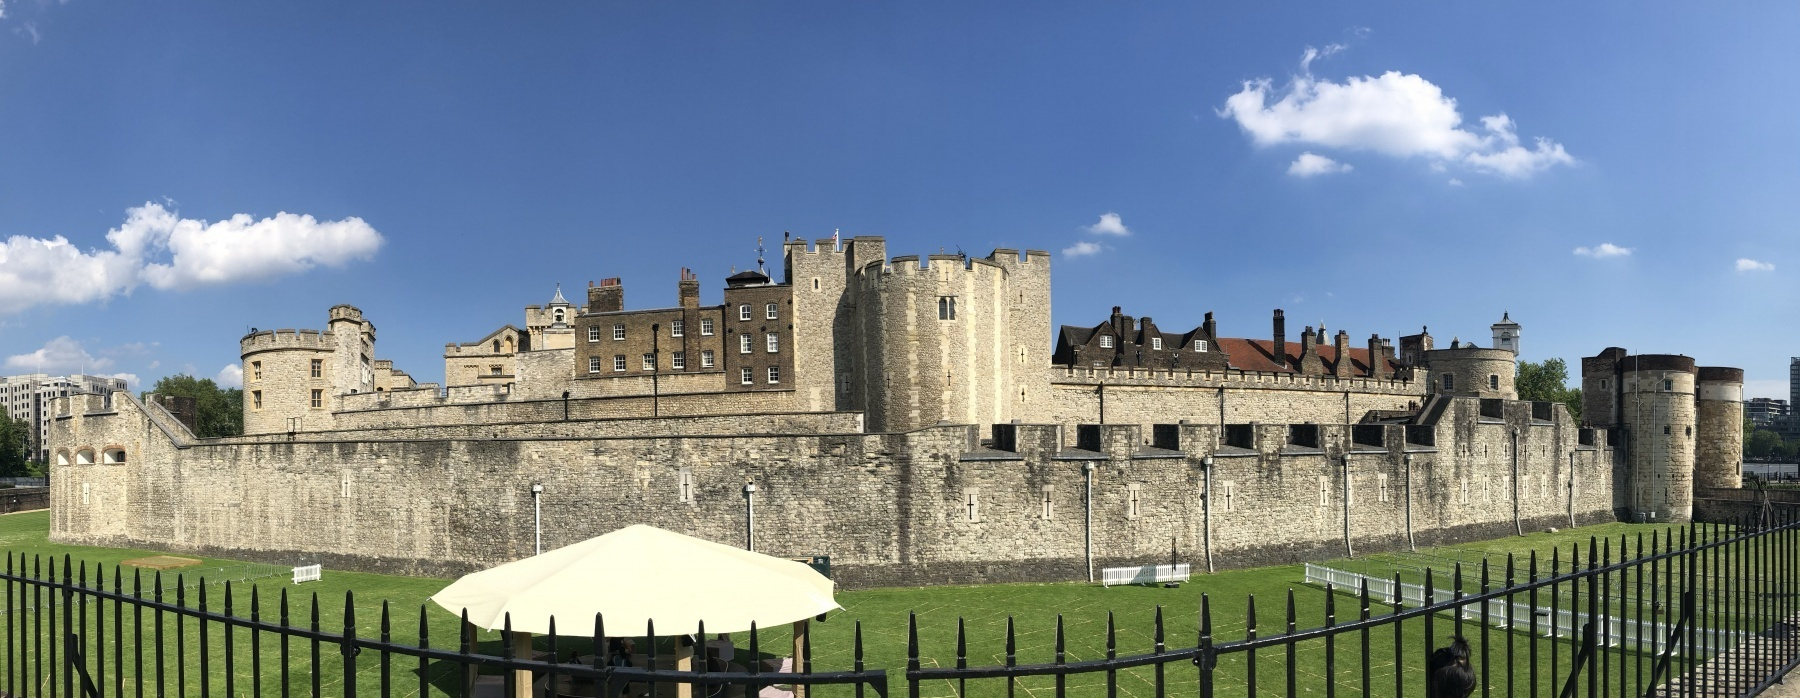 Tower-of-London-Lanthorn-Tower